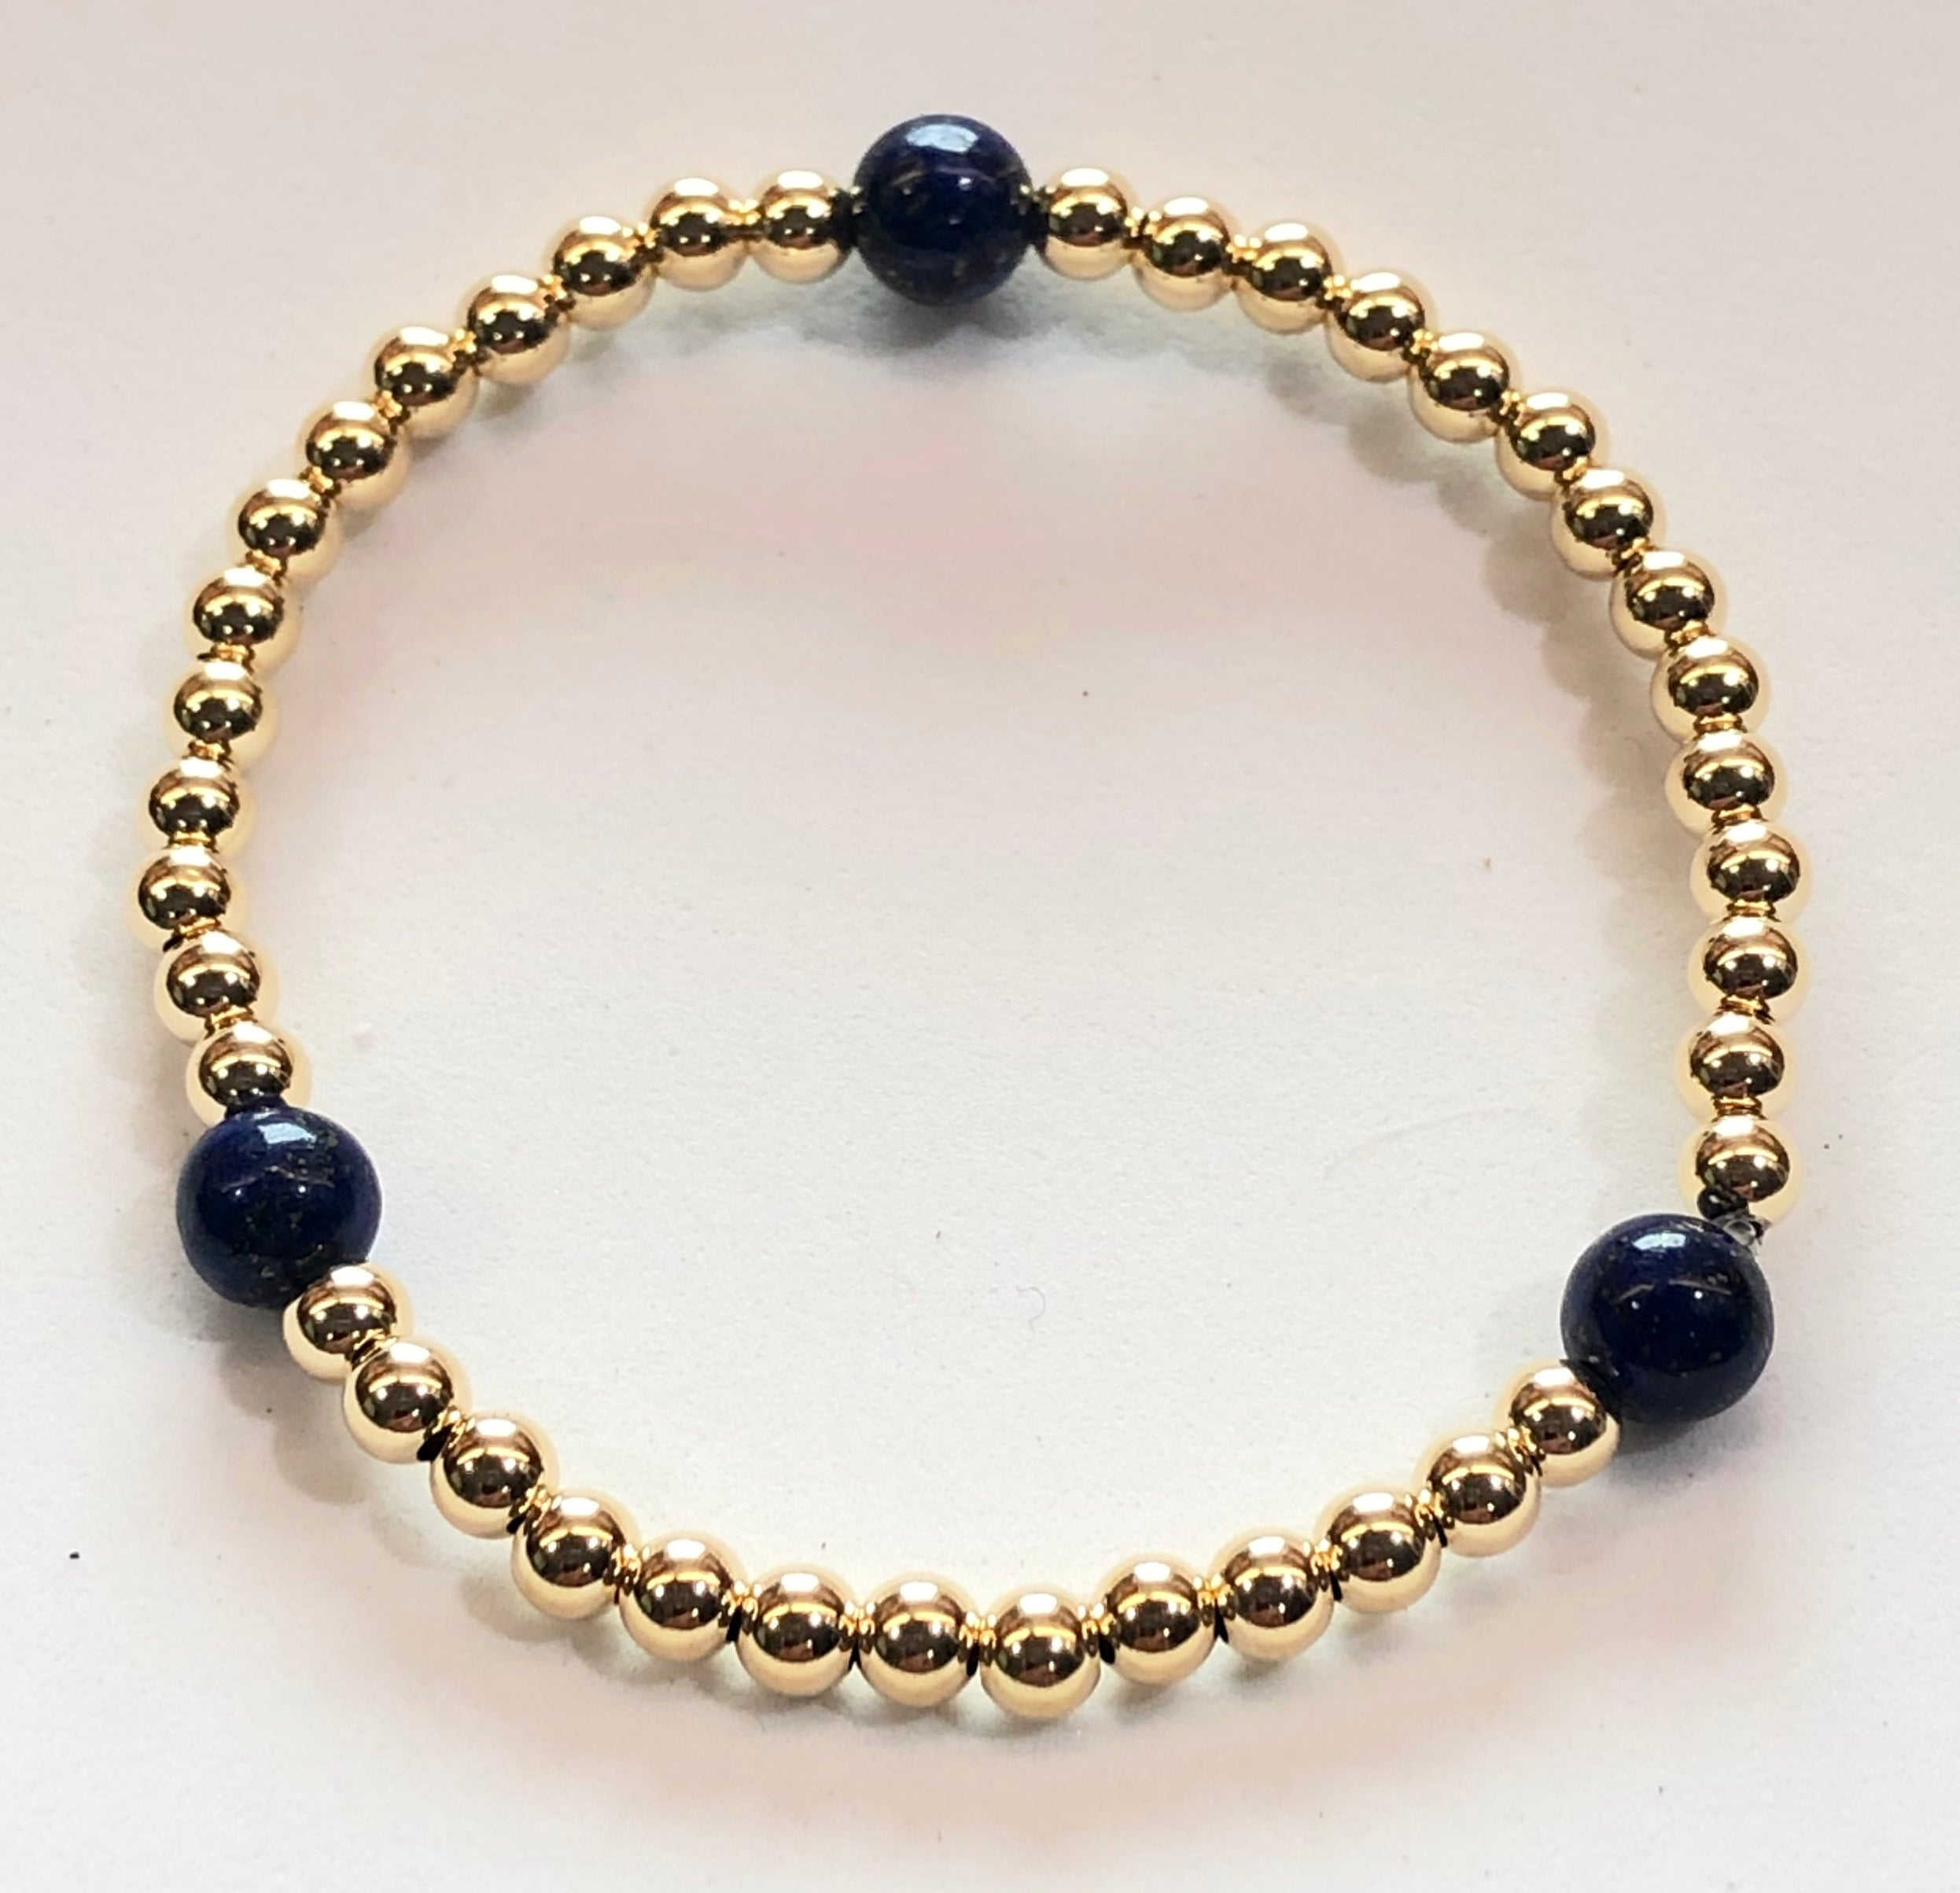 4mm 14kt Gold Filled Bead Bracelet with 3 6mm Blue Lapis Beads